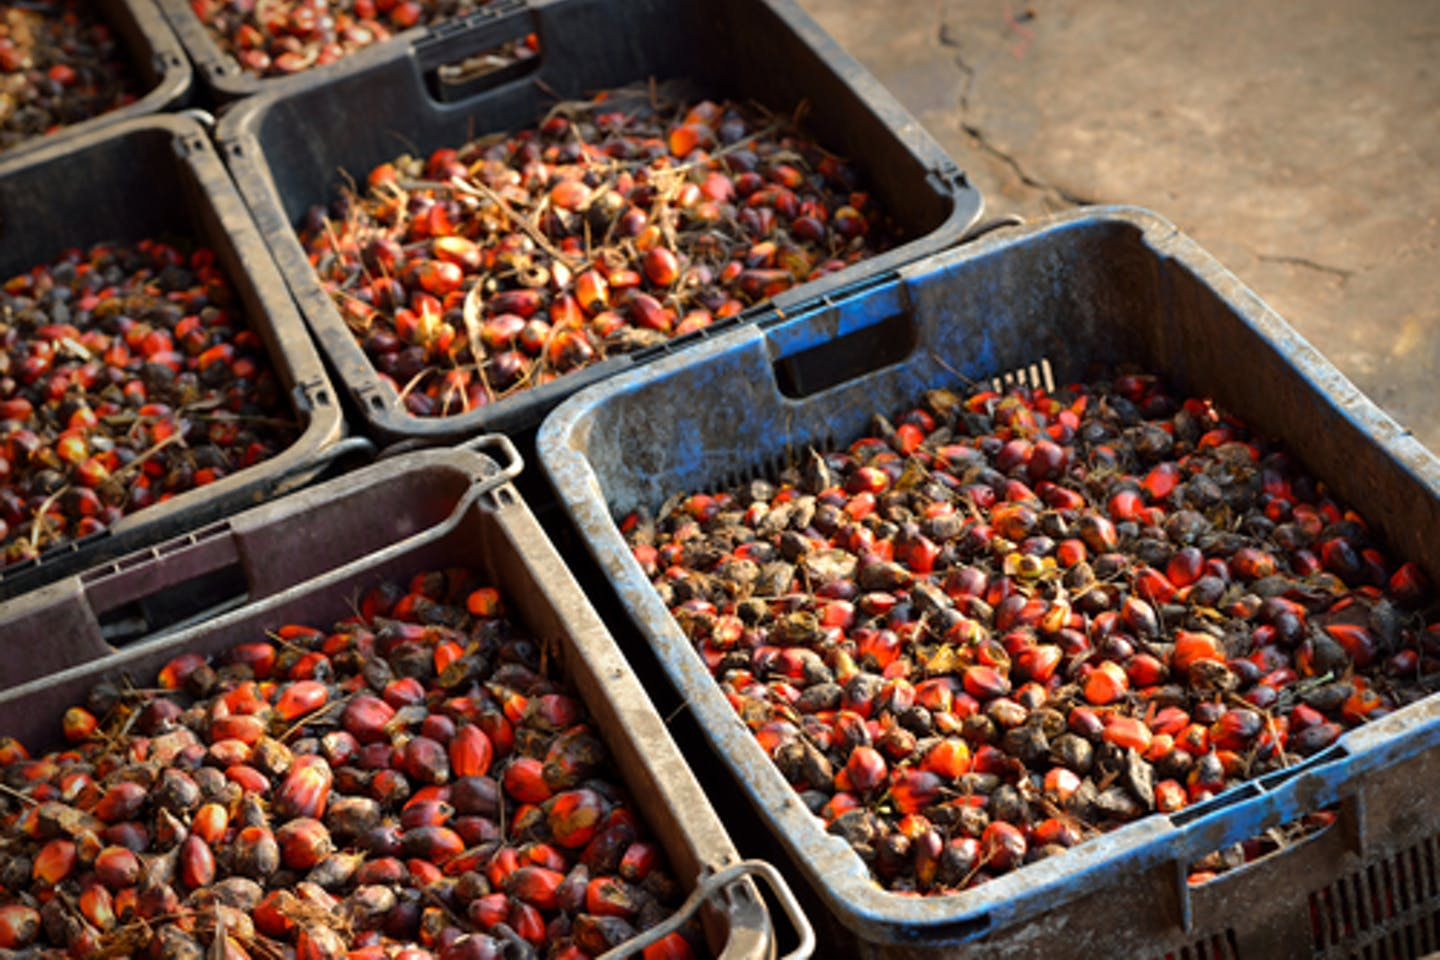 plam oil fruit bunches in crates